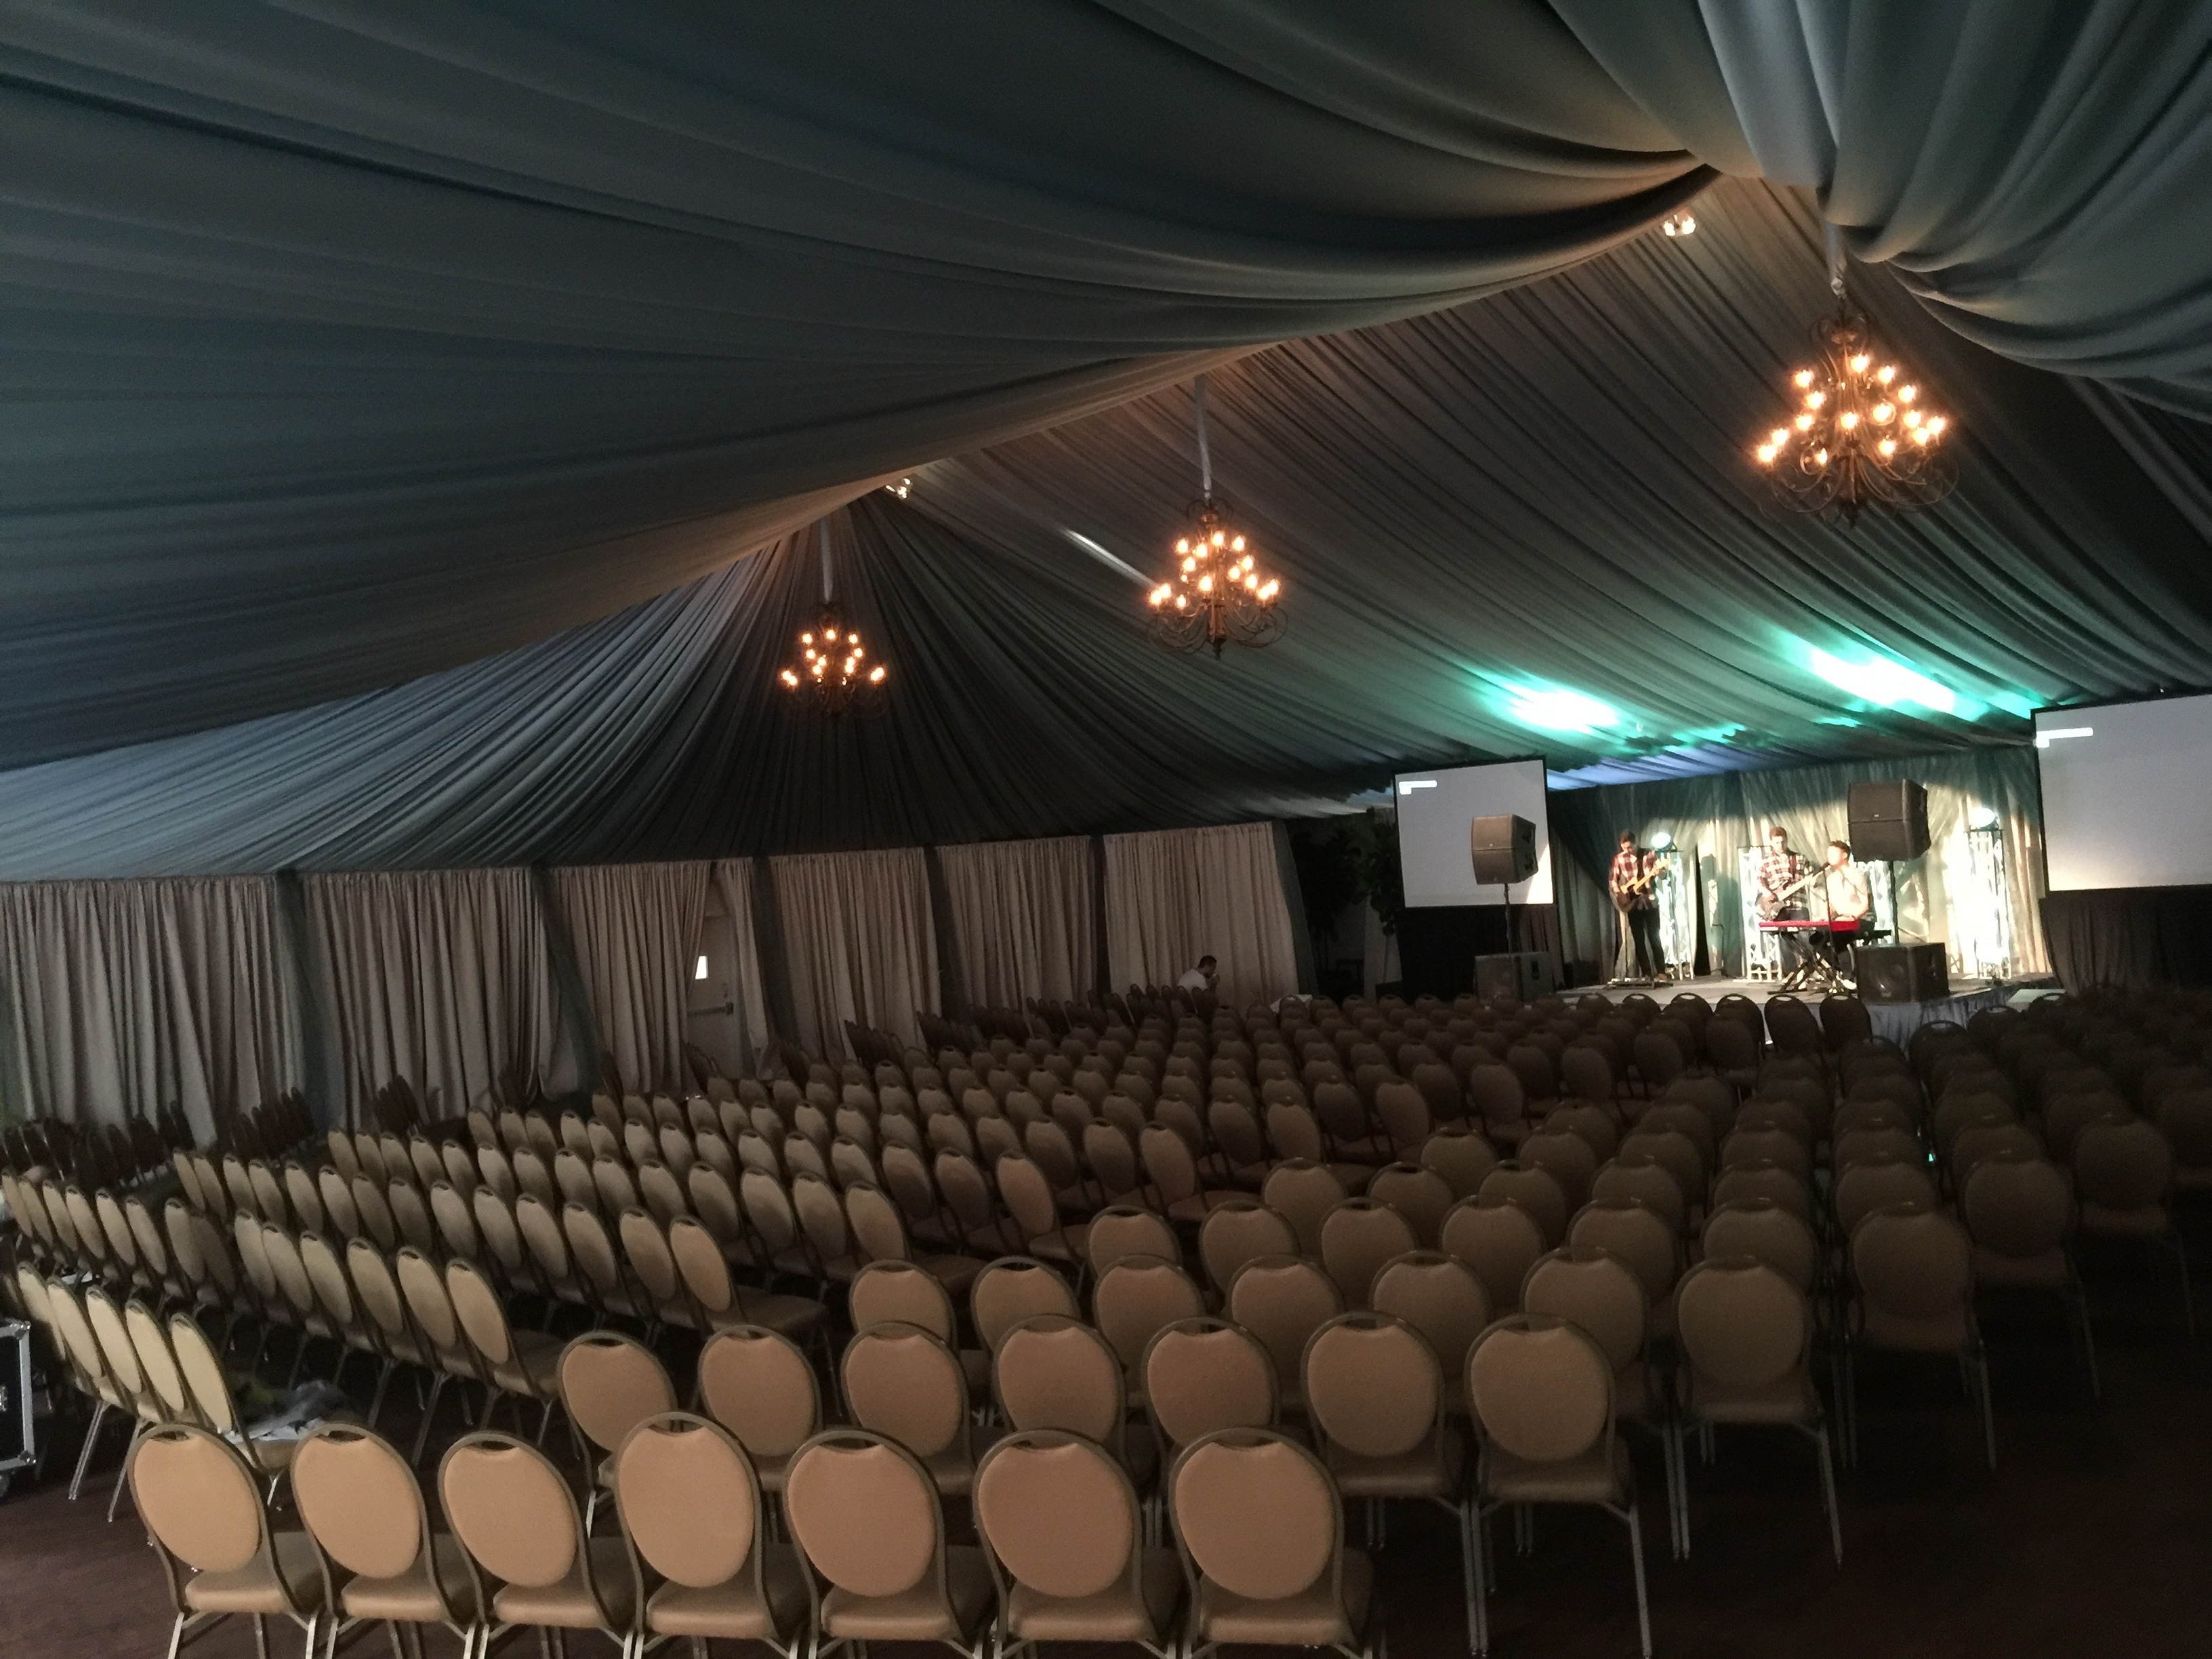 Elegant conference center tent equipped with chandelier, conference seating, and curtain detail.